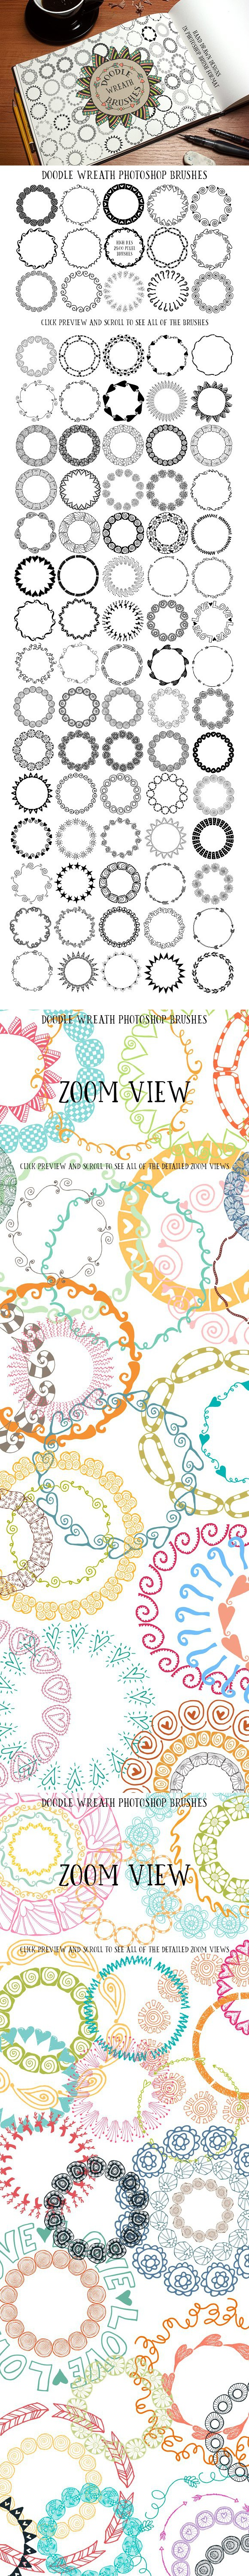 90 Doodle Wreath Photoshop Brushes : door photoshop brushes - pezcame.com